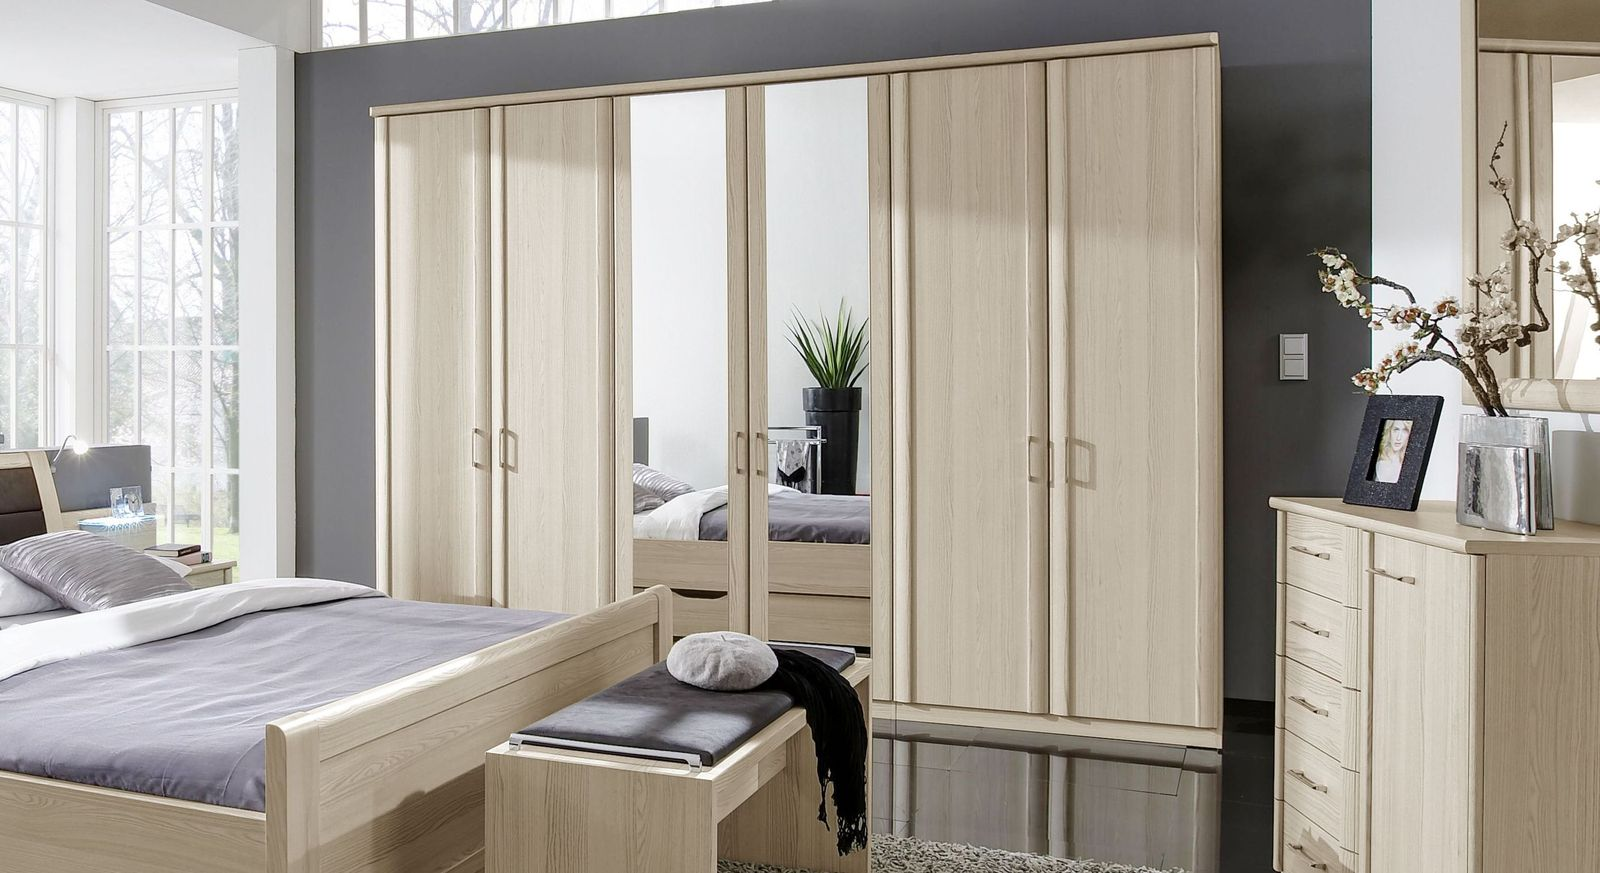 kleiderschrank mit dreht ren individuell konfigurierbar montego. Black Bedroom Furniture Sets. Home Design Ideas